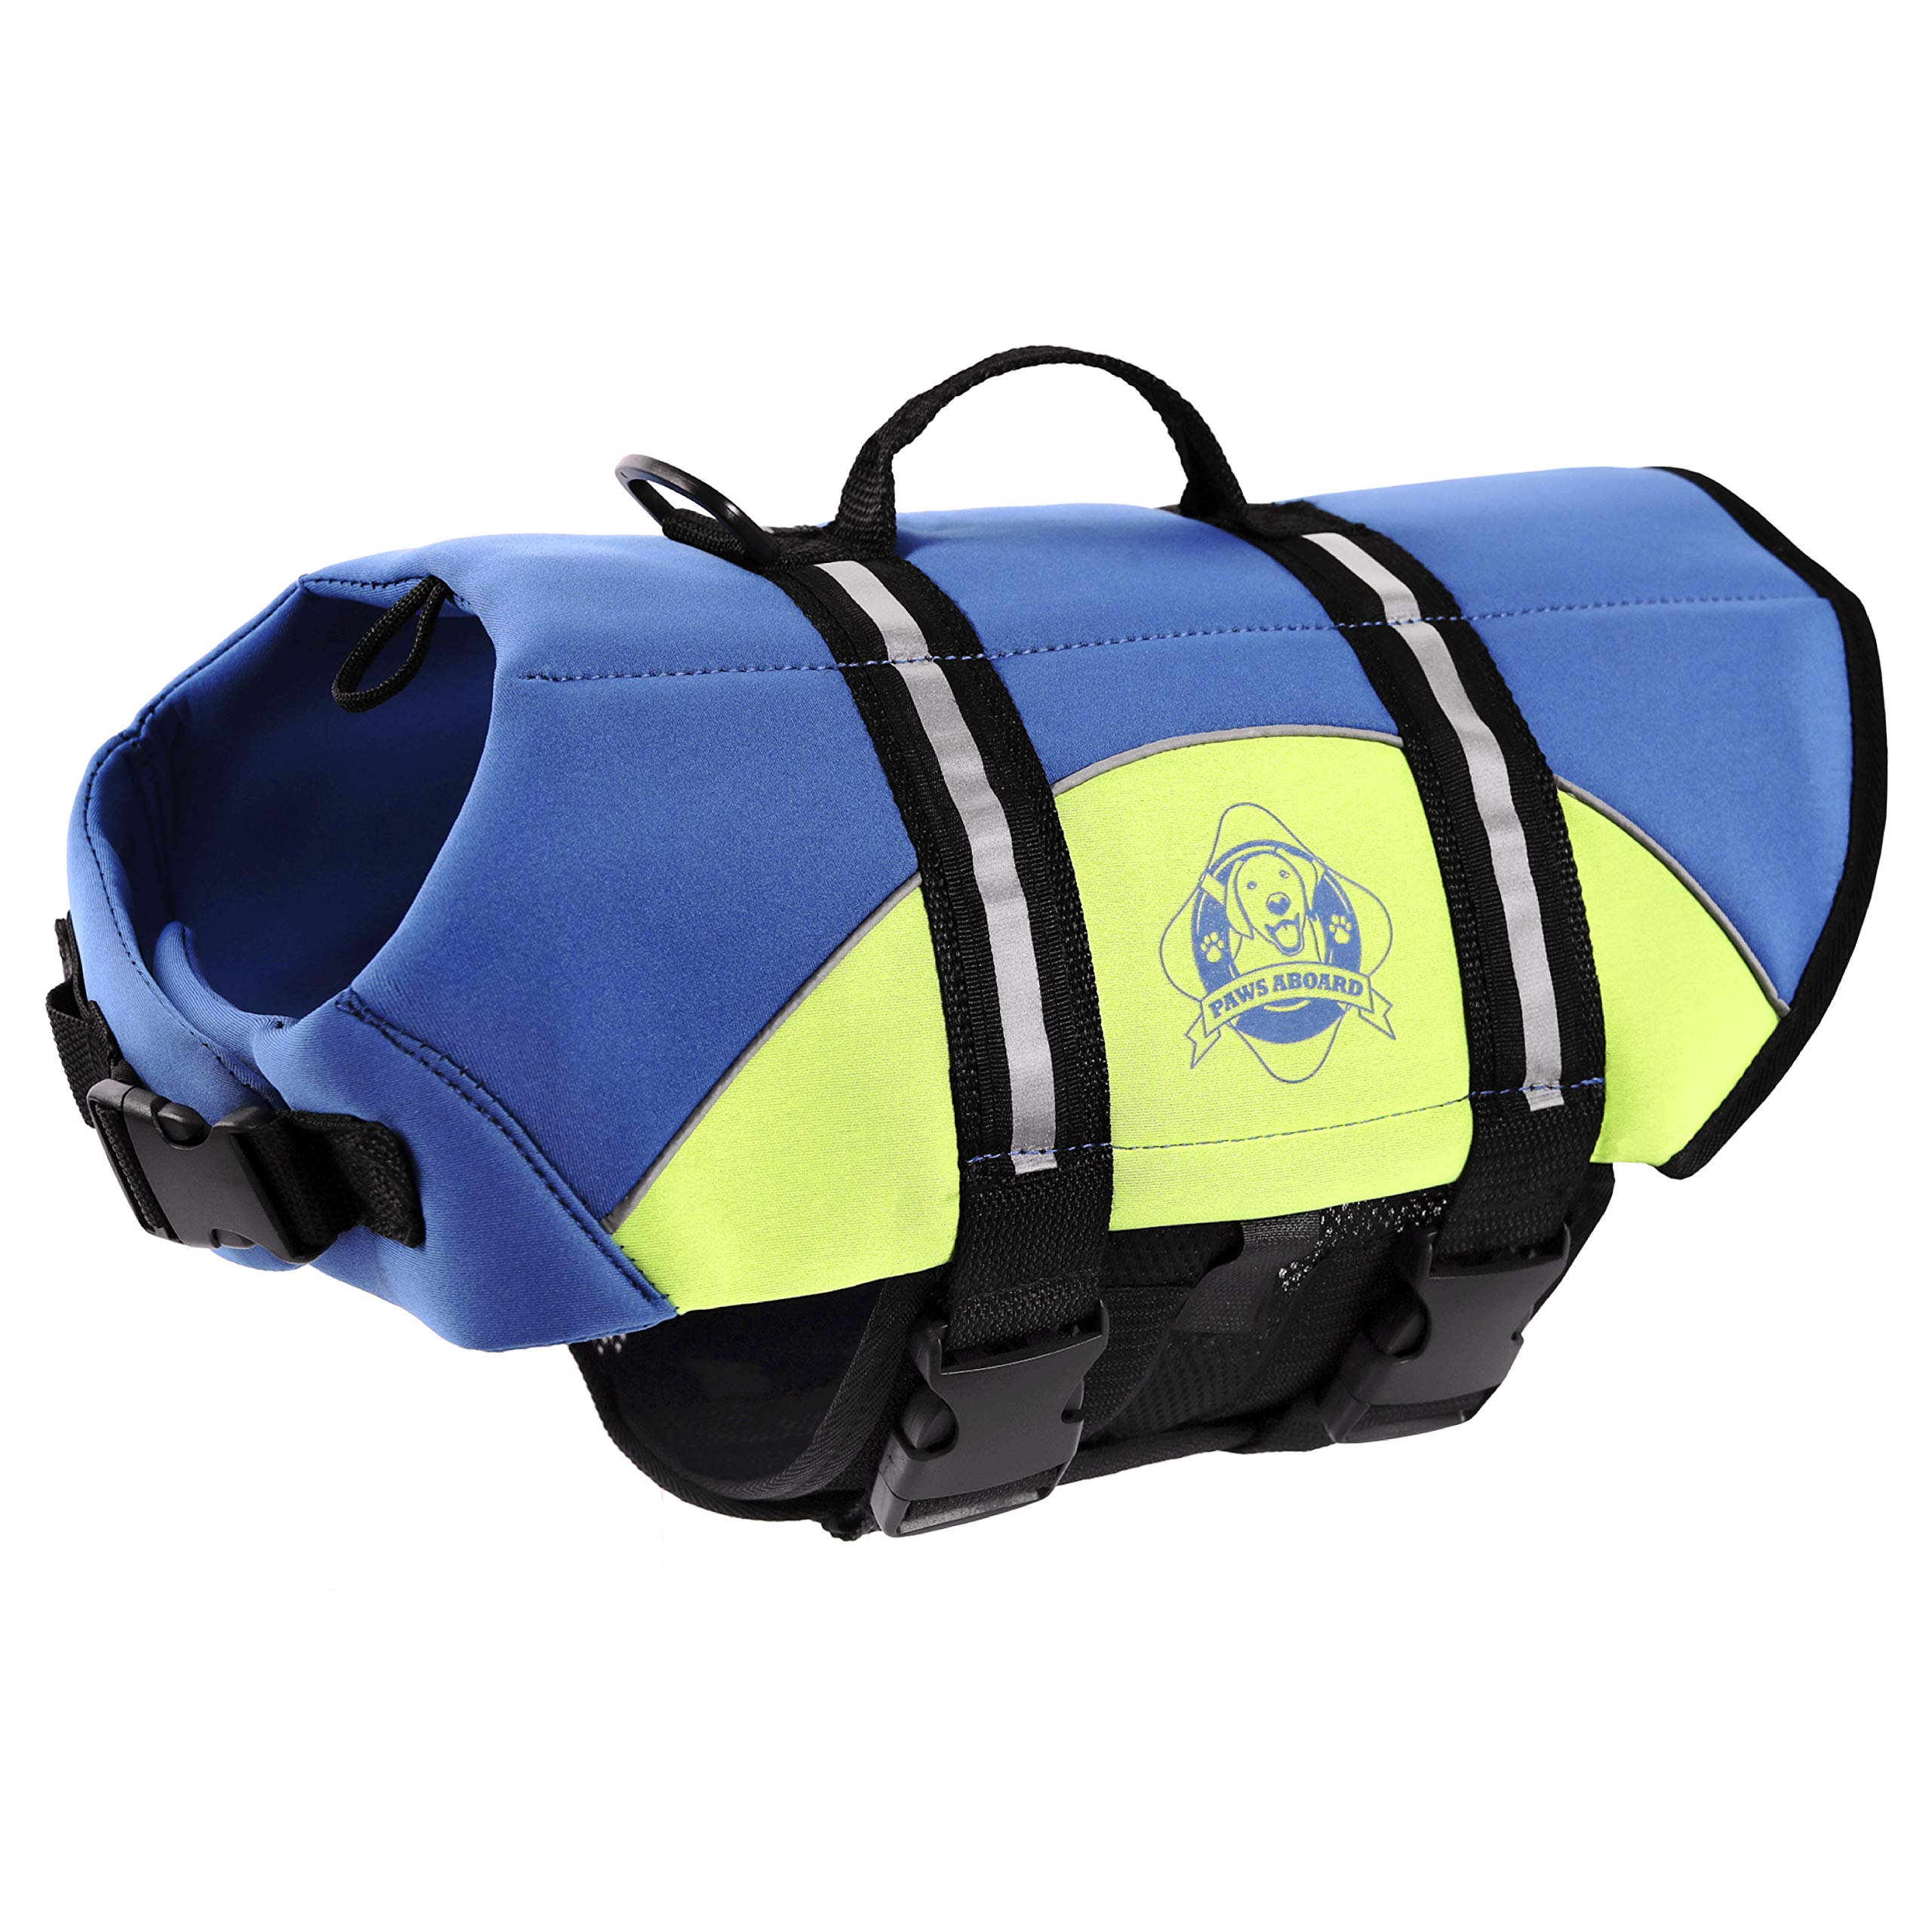 Paws Aboard Dog Life Jacket,  Neoprene Dog Life Vest for Swimming and Boating - Blue/Yellow by Paws Aboard